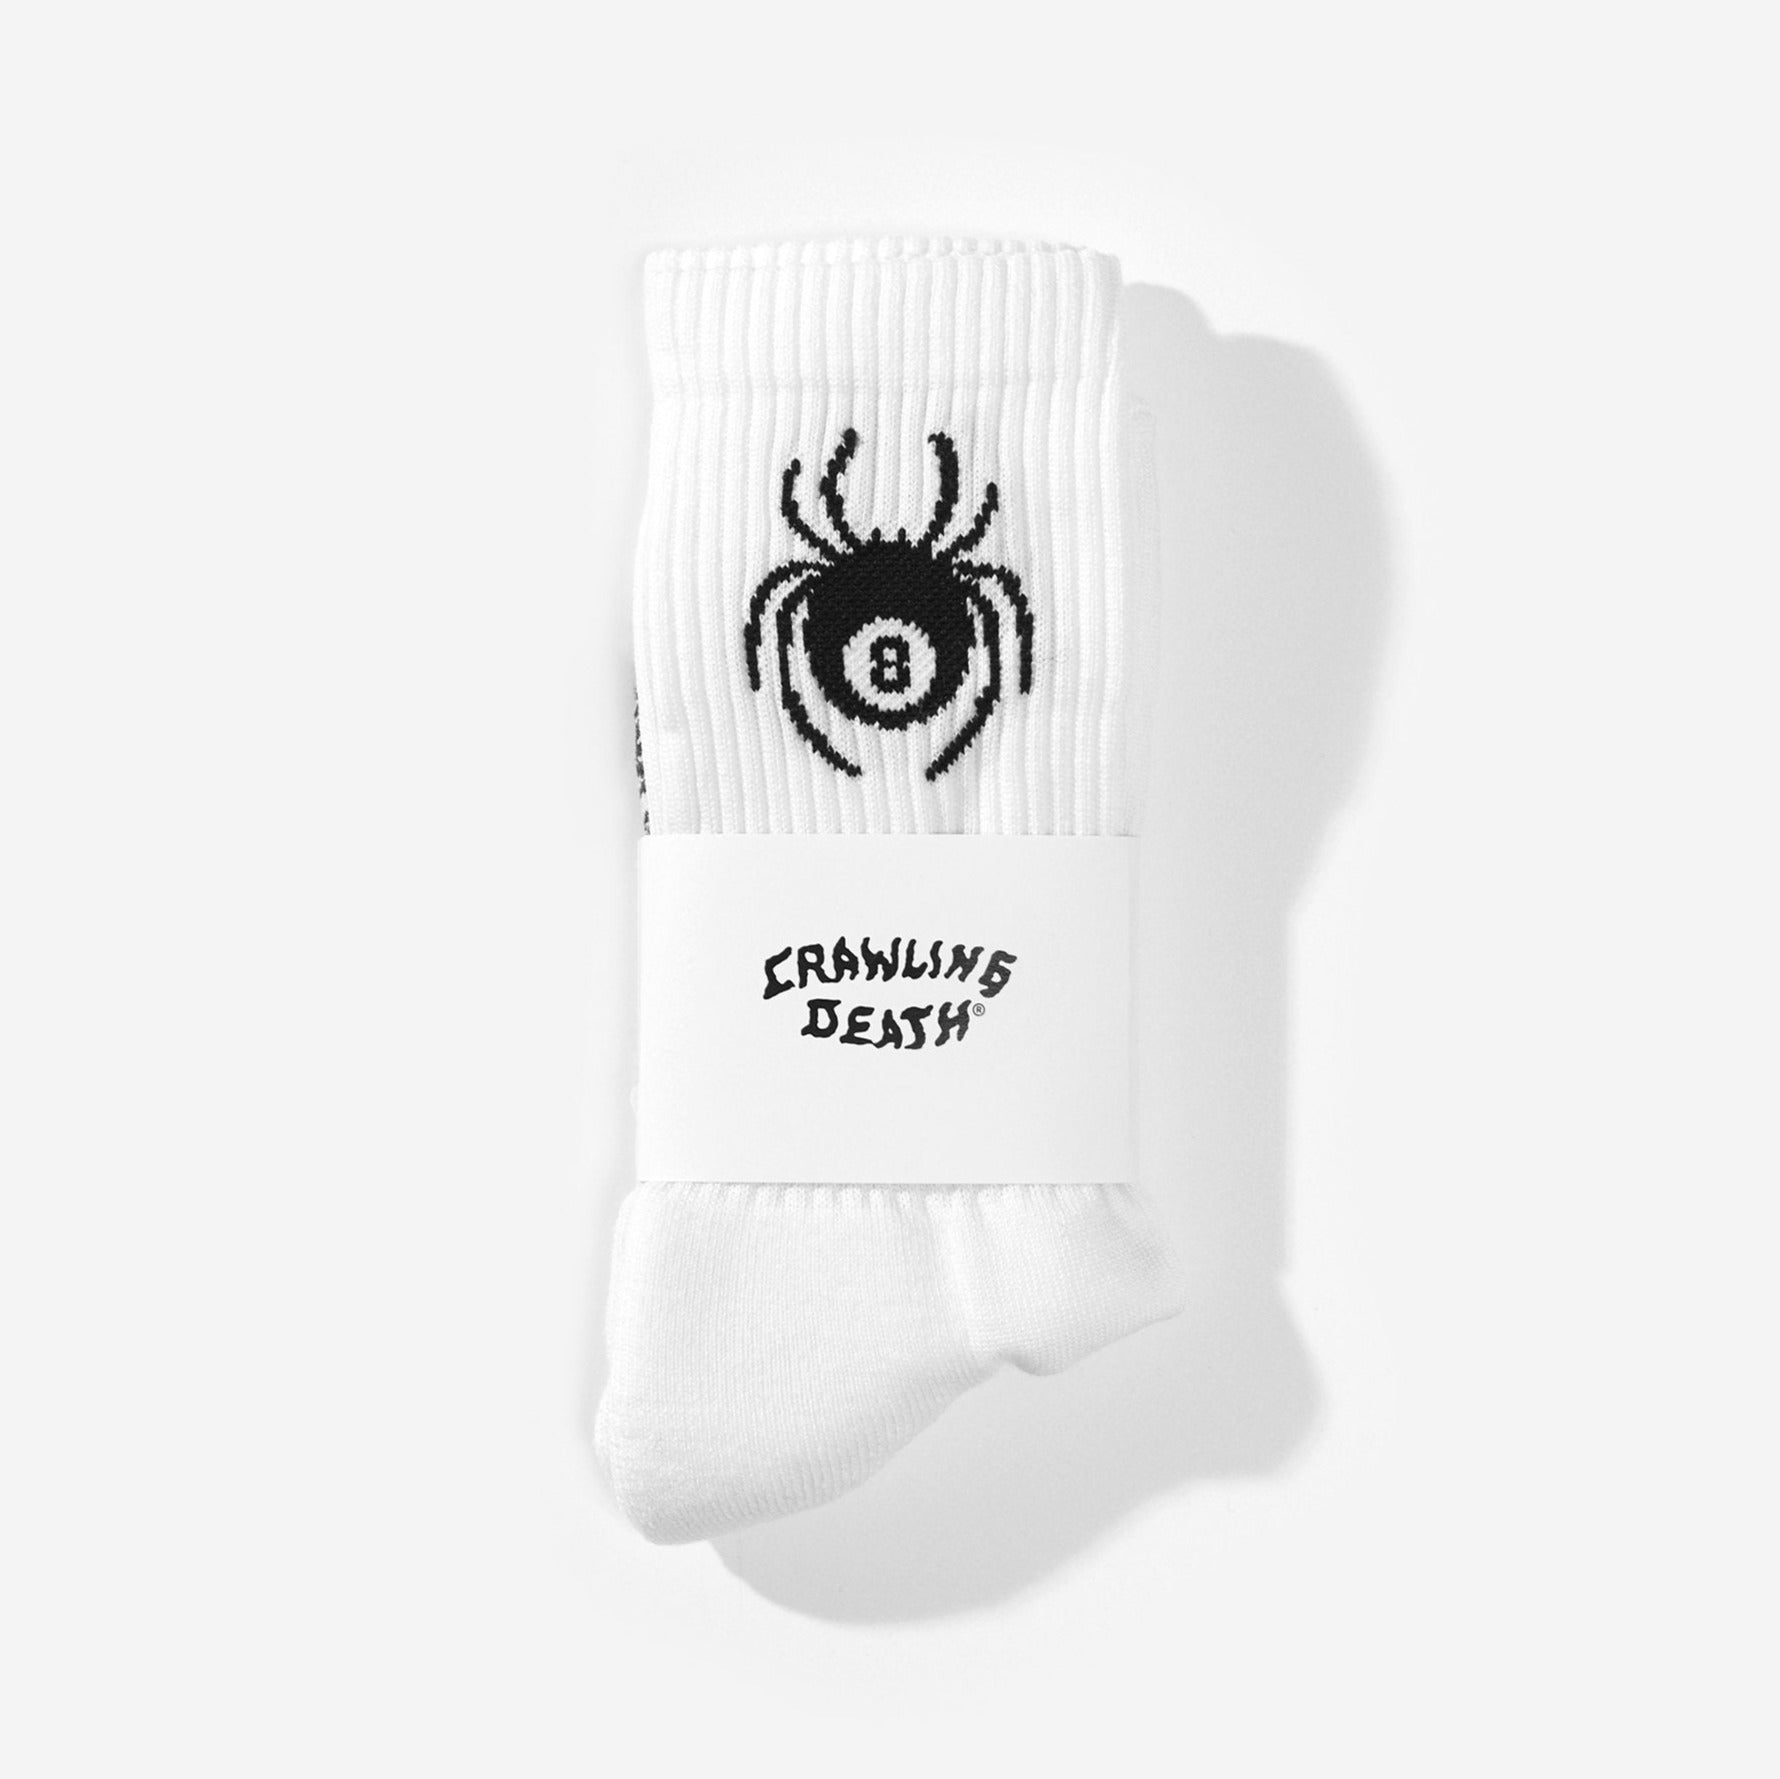 8-Ball Spider Socks - White